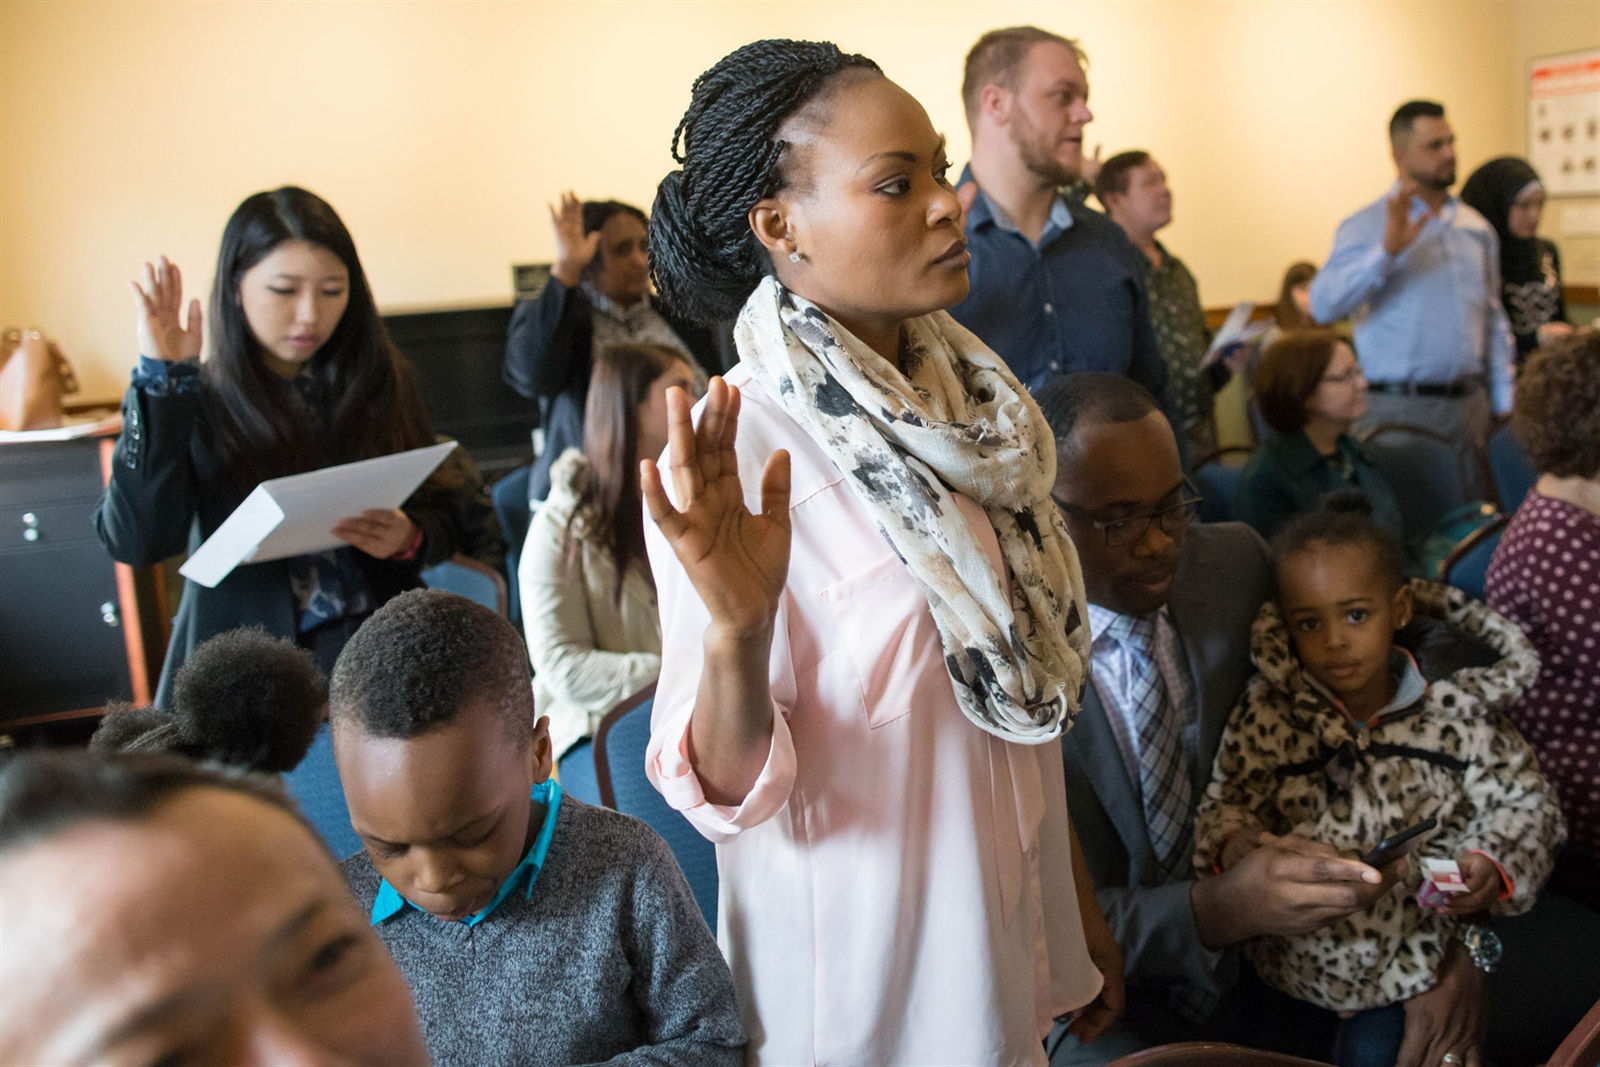 Patricia Suteh of Nigeria is surrounded by her family, husband K.C., son Kemene, 5, and daughters Kezor, 3, and Lenu, 2, as she takes the oath of allegiance to become a United States citizen.